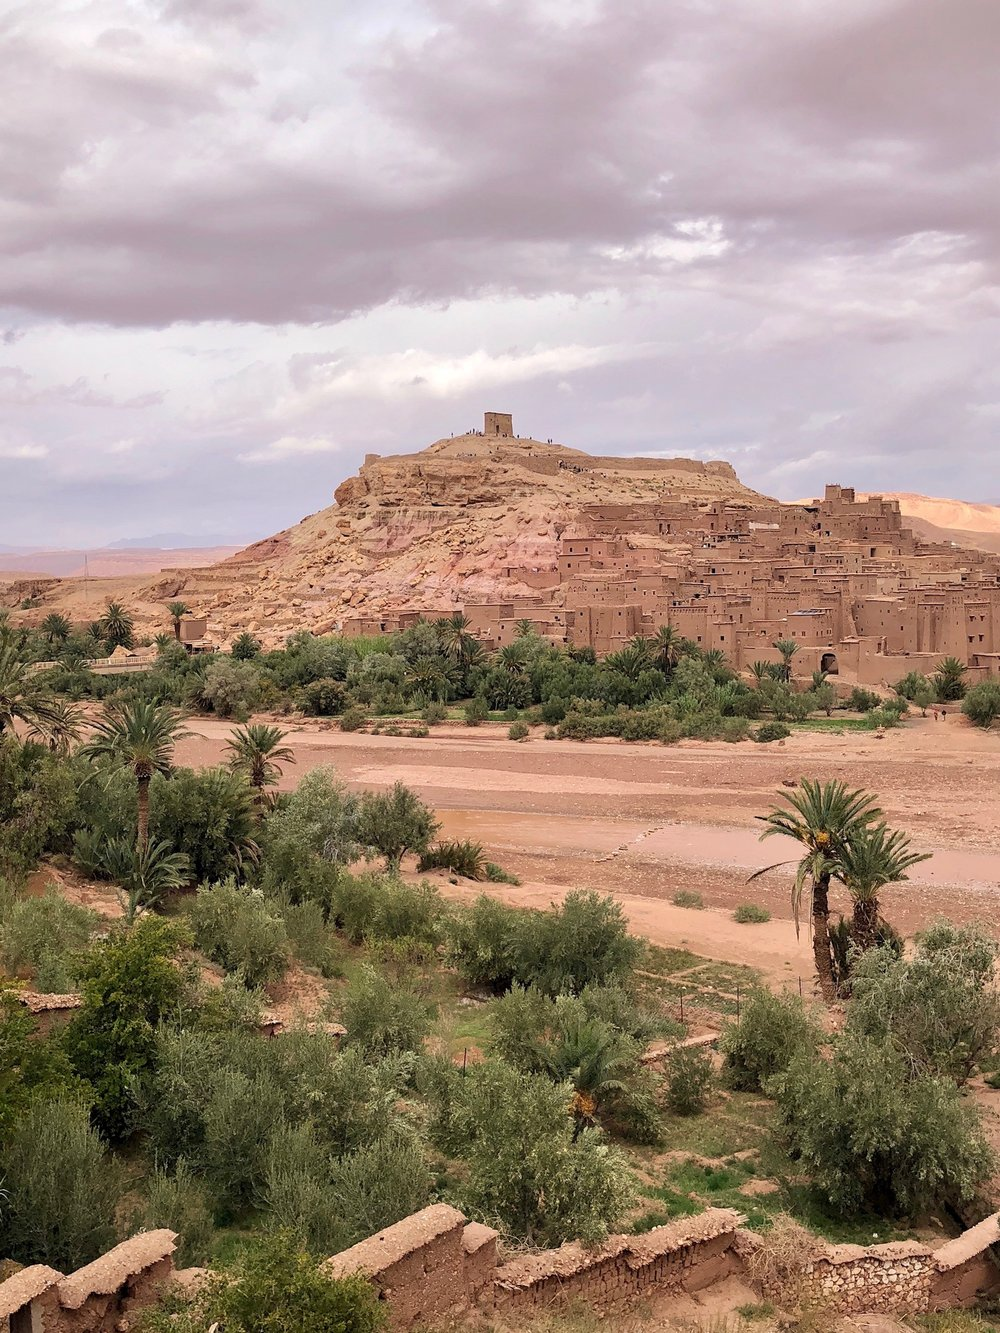 The UNESCO World Heritage site of Ait Ben Haddou, en route to the Sahara Desert.